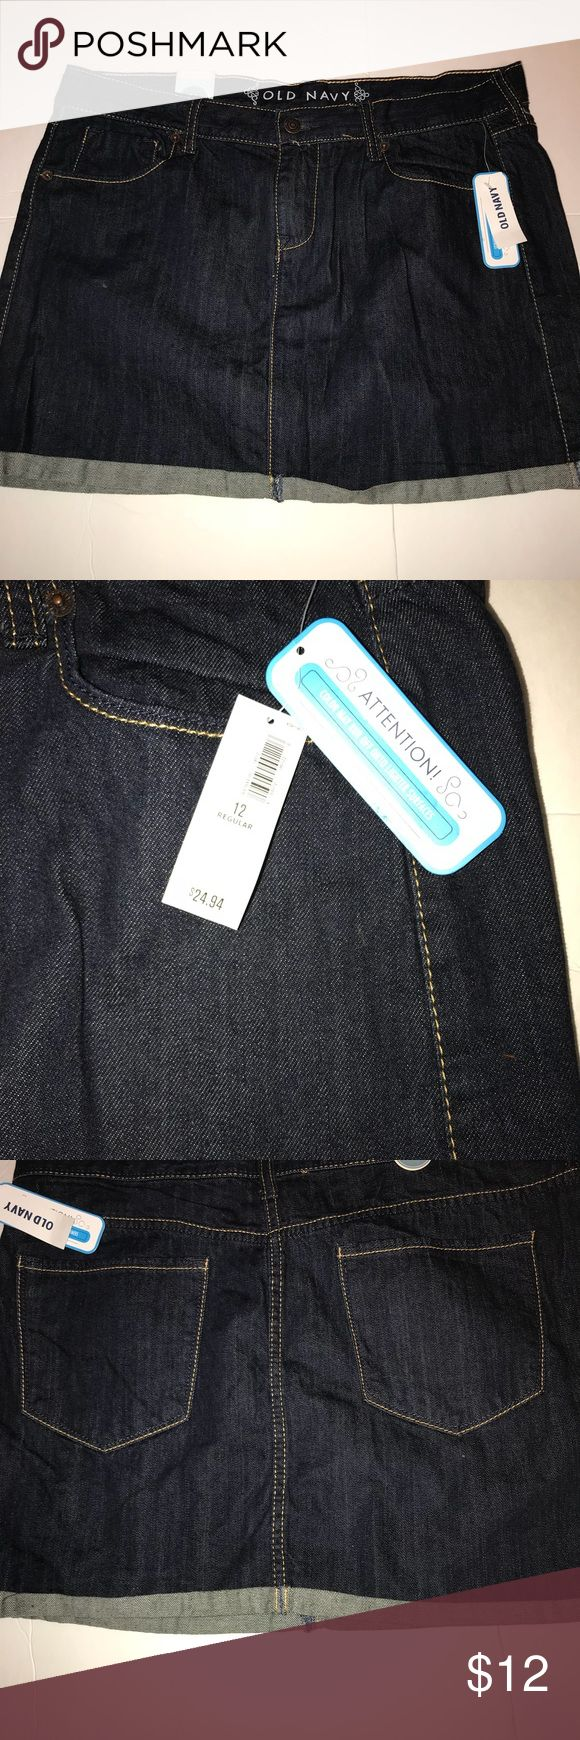 New Old Navy Short Jean Skirt SIZE 12. New Old Navy Short Jean Skirt Misses SIZE 12. Old Navy Skirts Mini